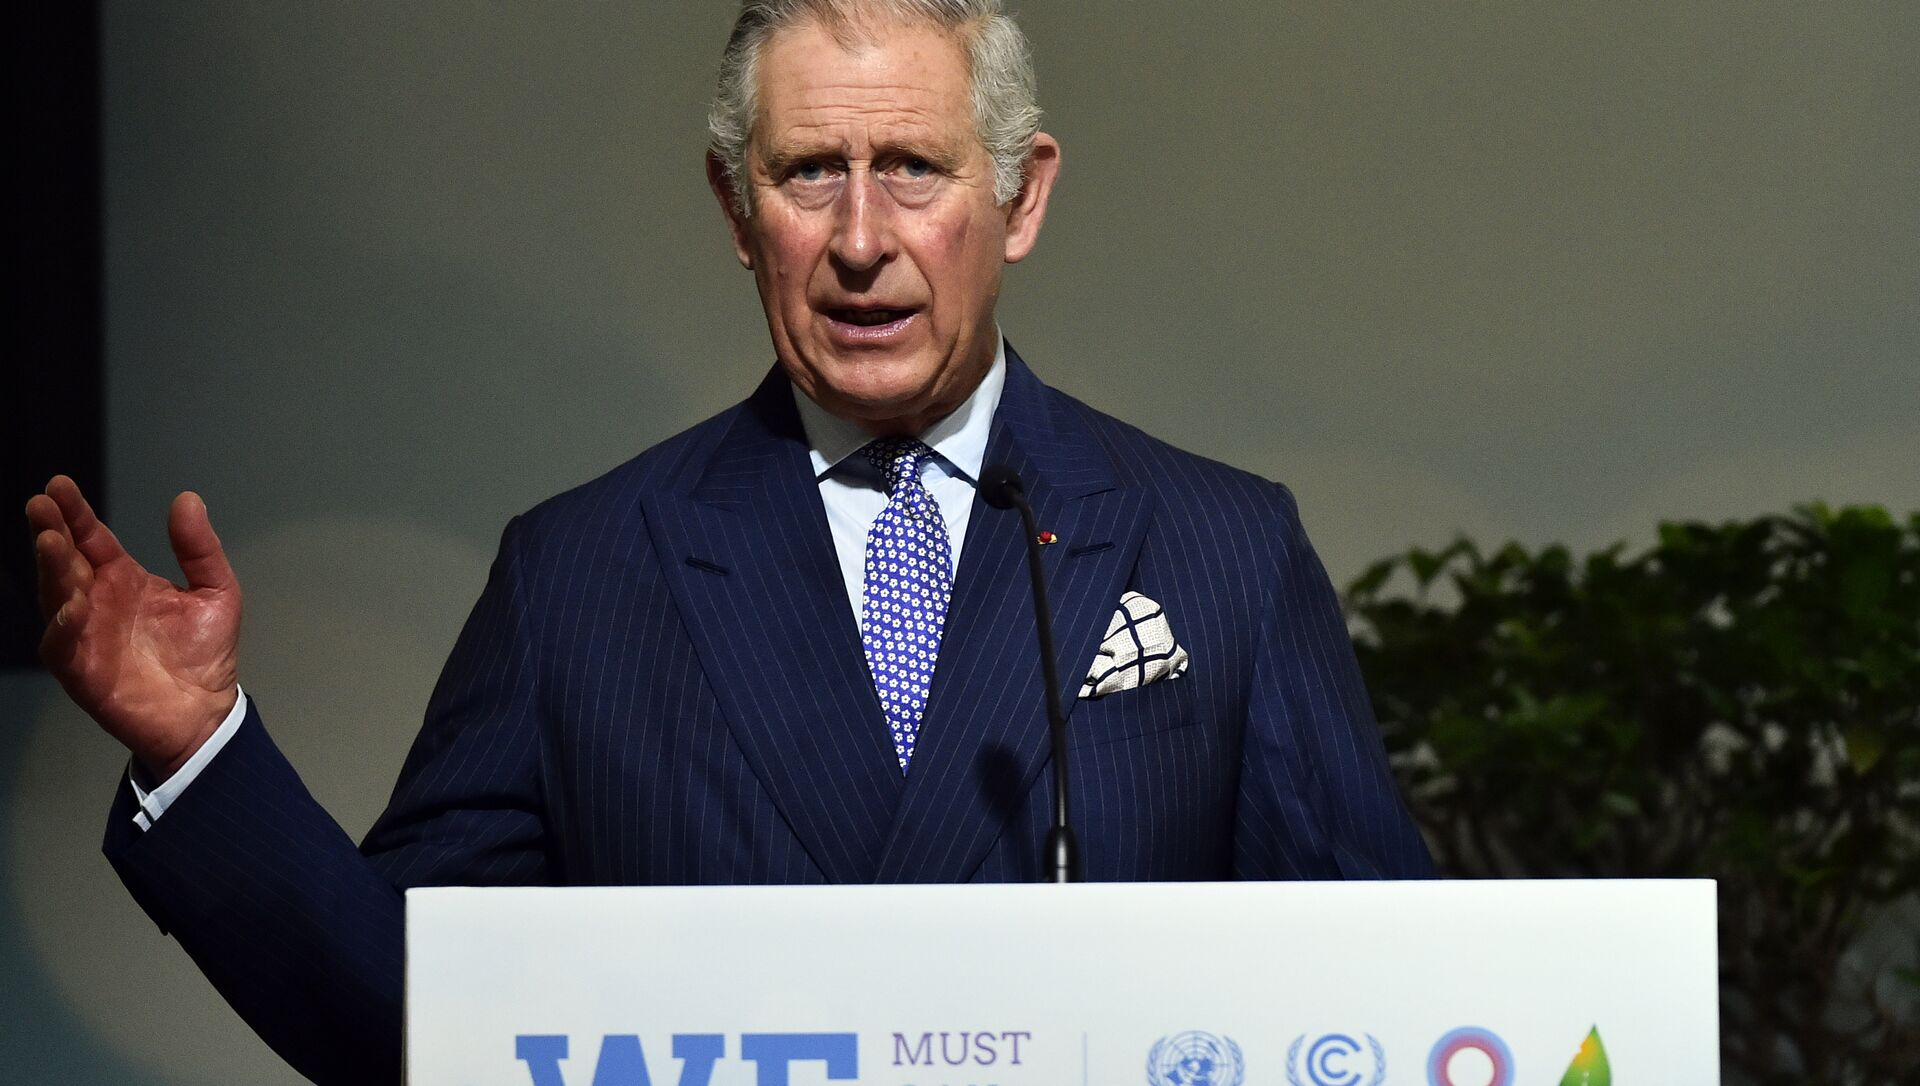 Britain's Prince Charles, The Prince of Wales delivers a speech on Forests as part of the United Nations conference on climate change COP21, on December 1, 2015 at Le Bourget, on the outskirts of the French capital Paris - Sputnik International, 1920, 01.08.2021